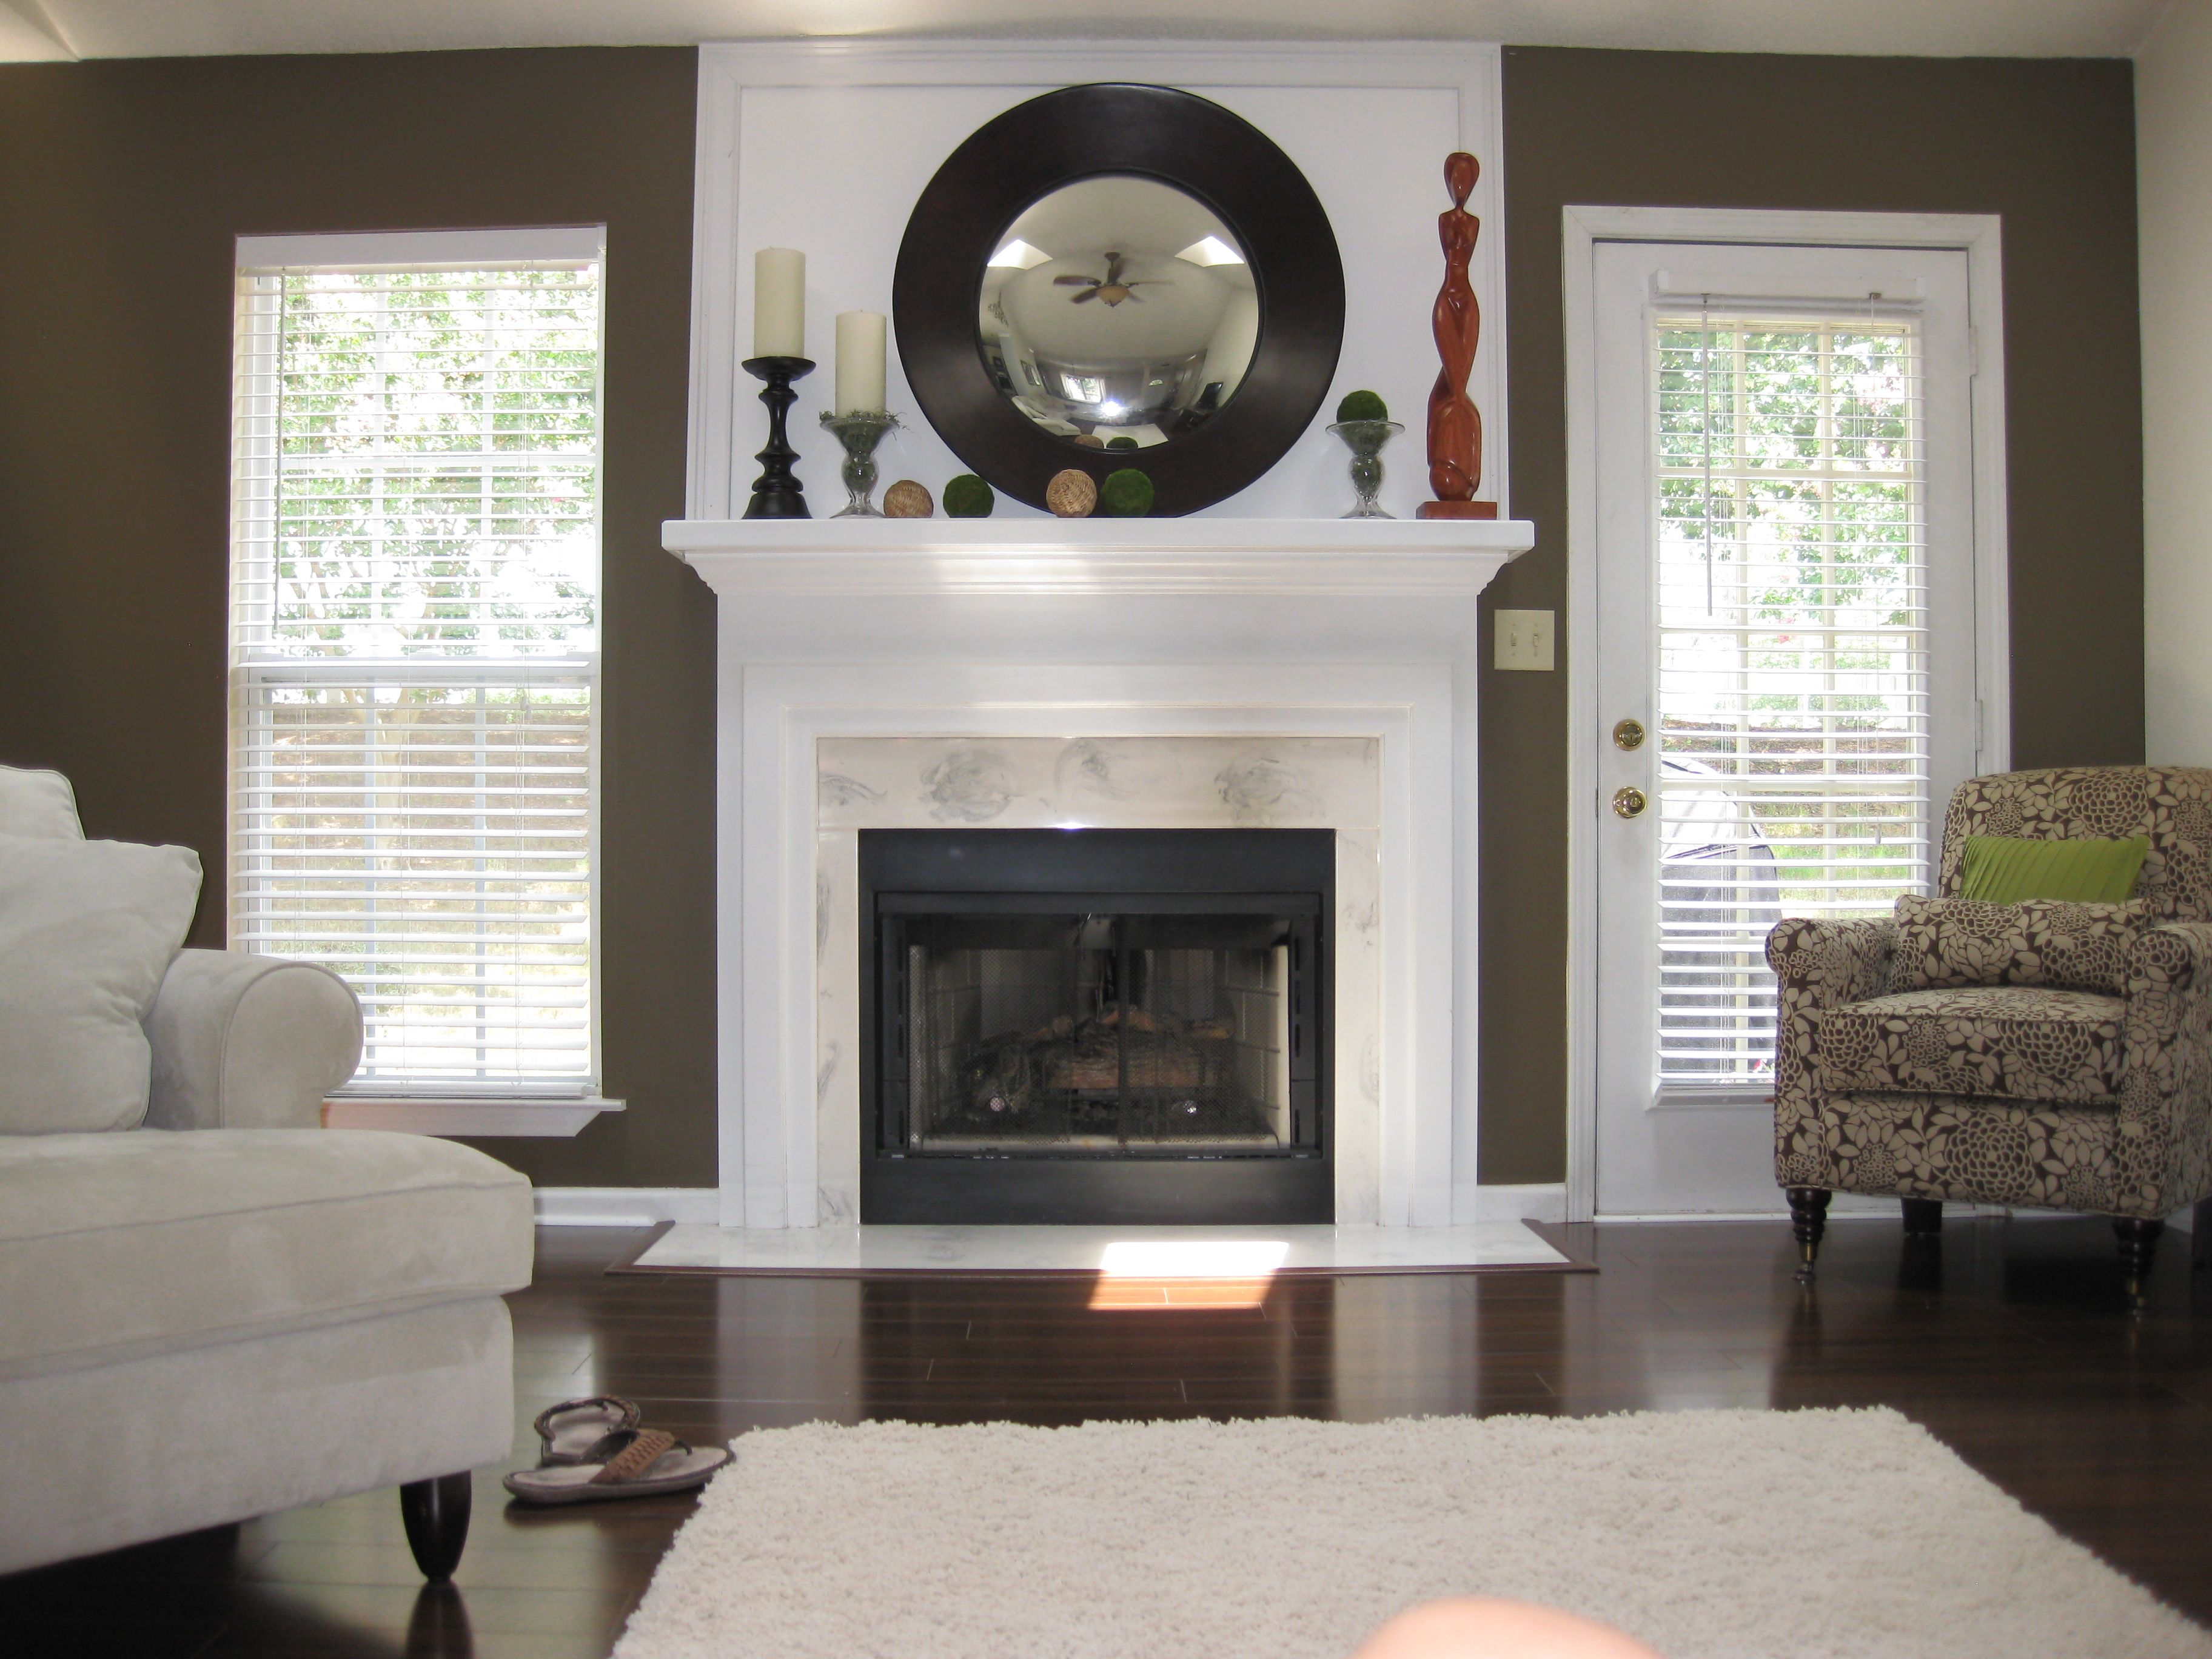 Living Room Remodel Windows On Both Sides Of Fire Place